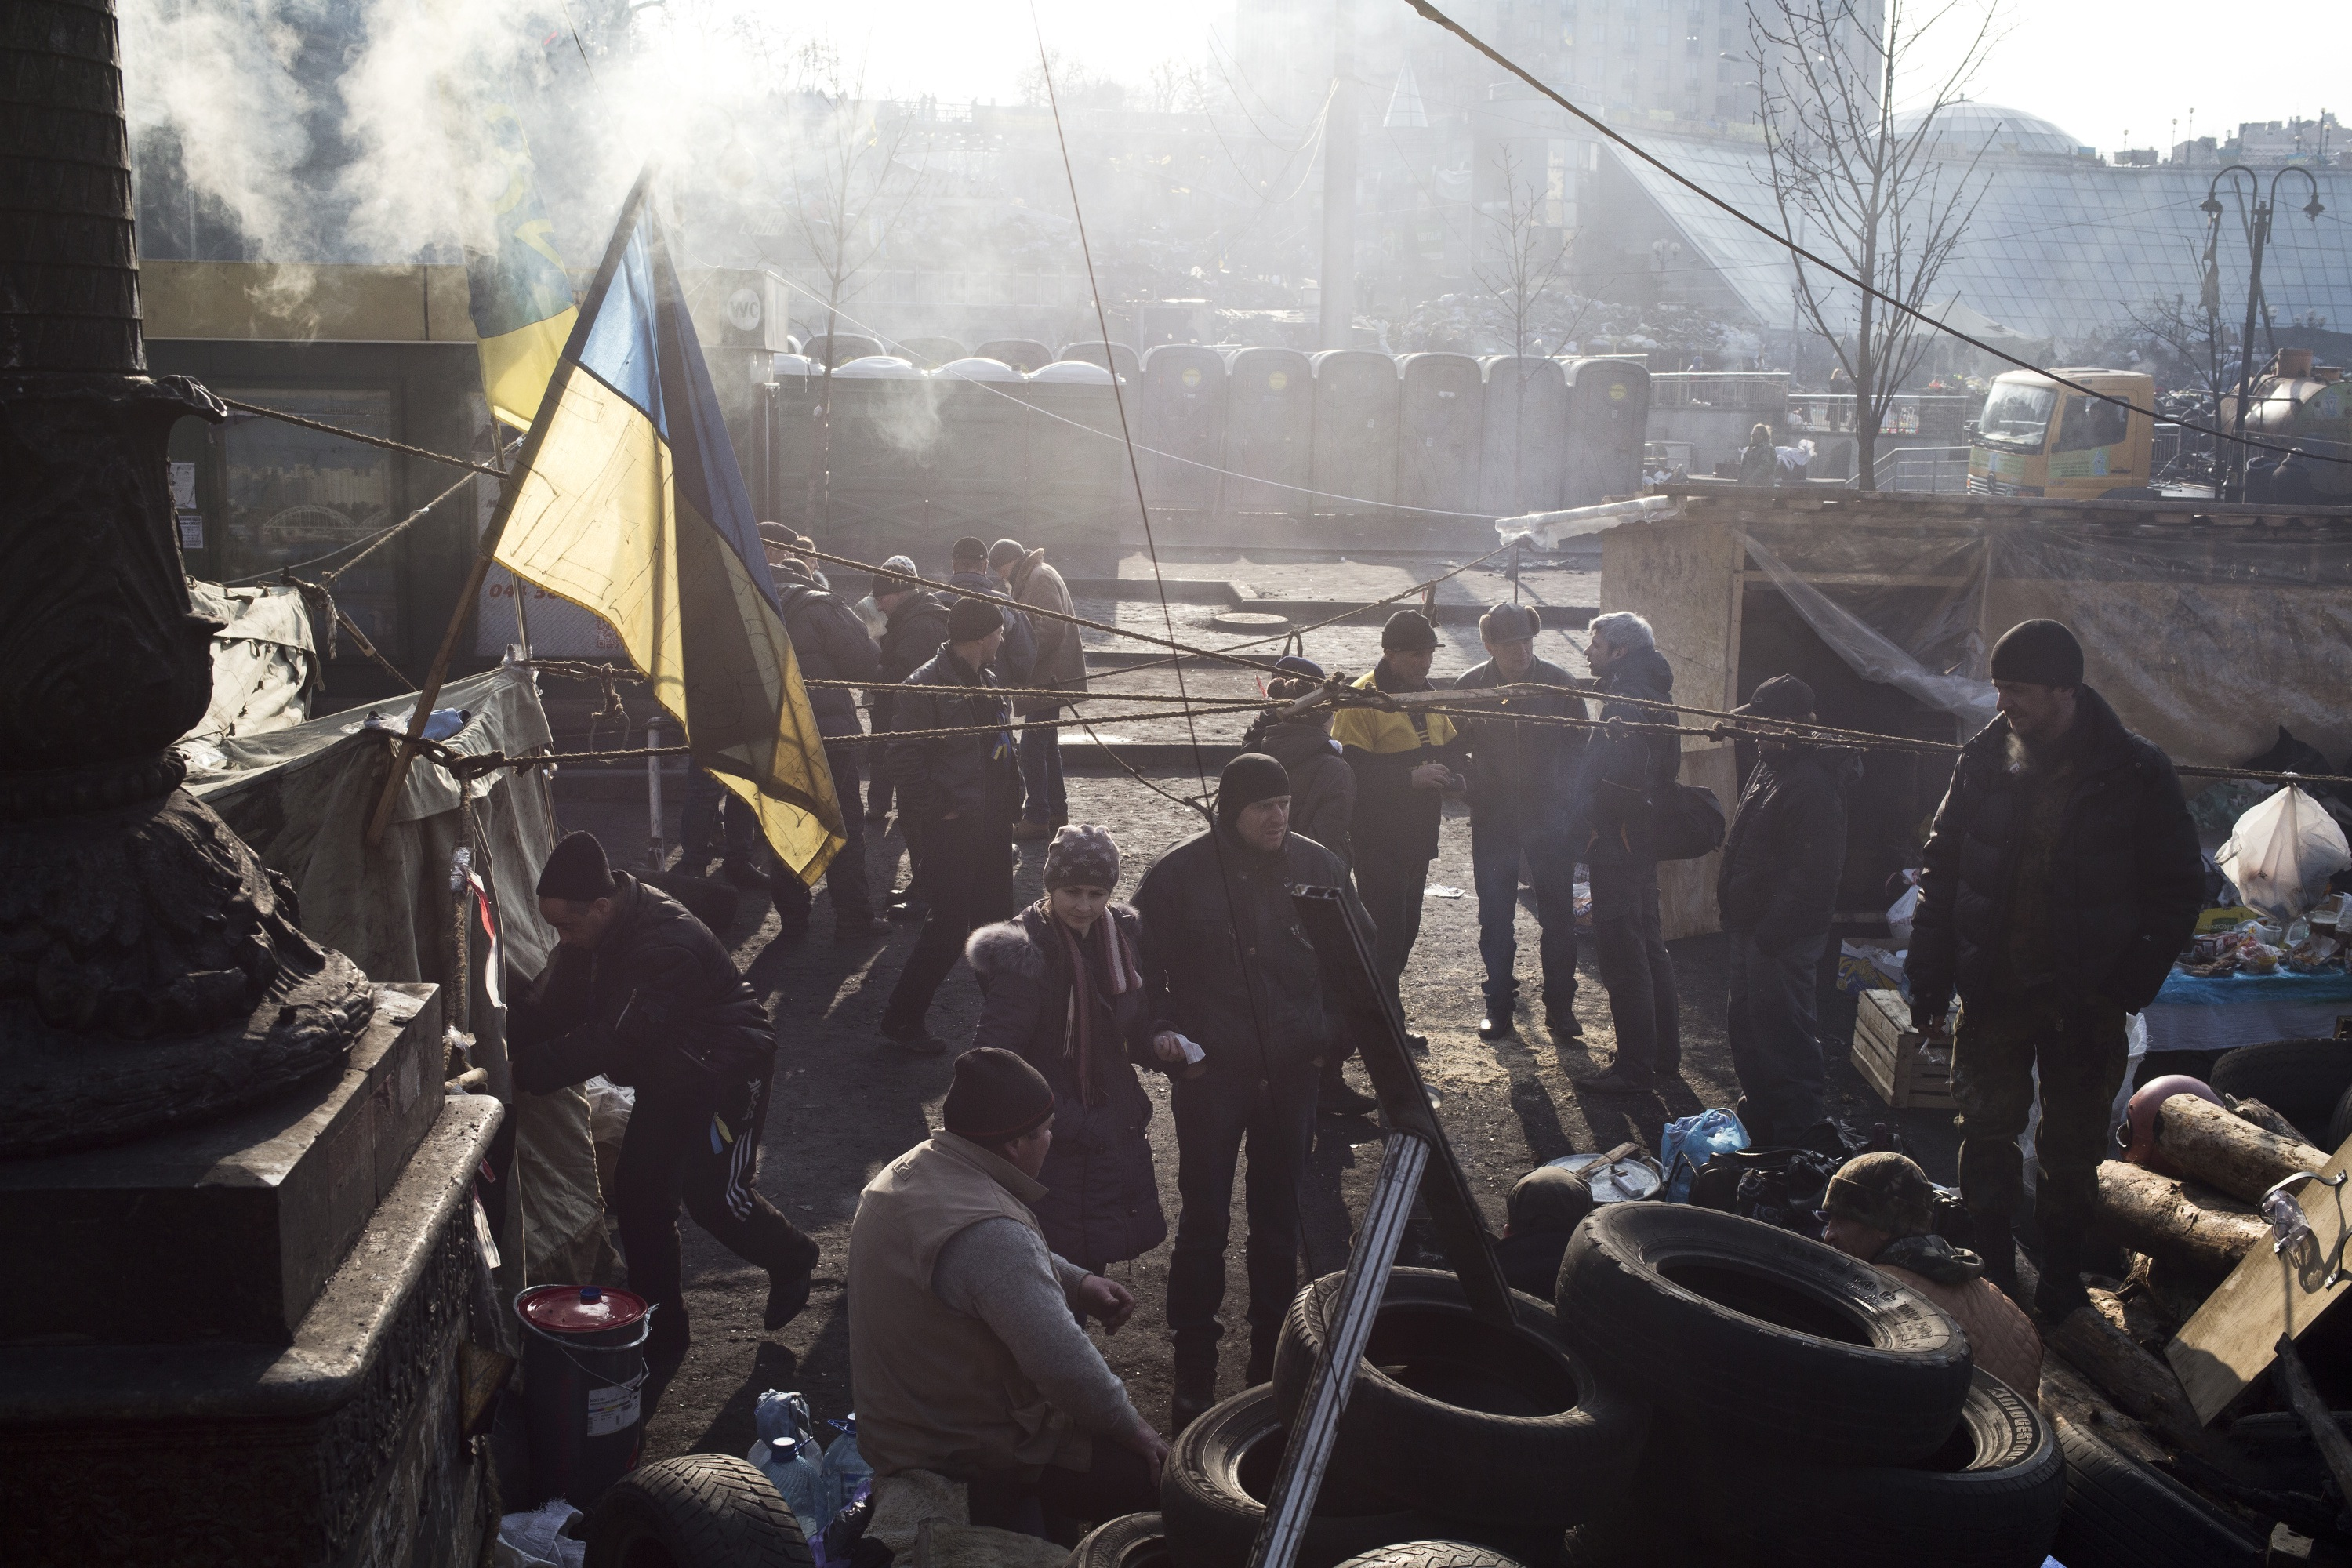 Anti-government protesters stand near barricades and tents during a sit-in of Independence Square in Kiev, Ukraine on Feb. 24, 2014. (Ed Ou/Reportage by Getty Images)